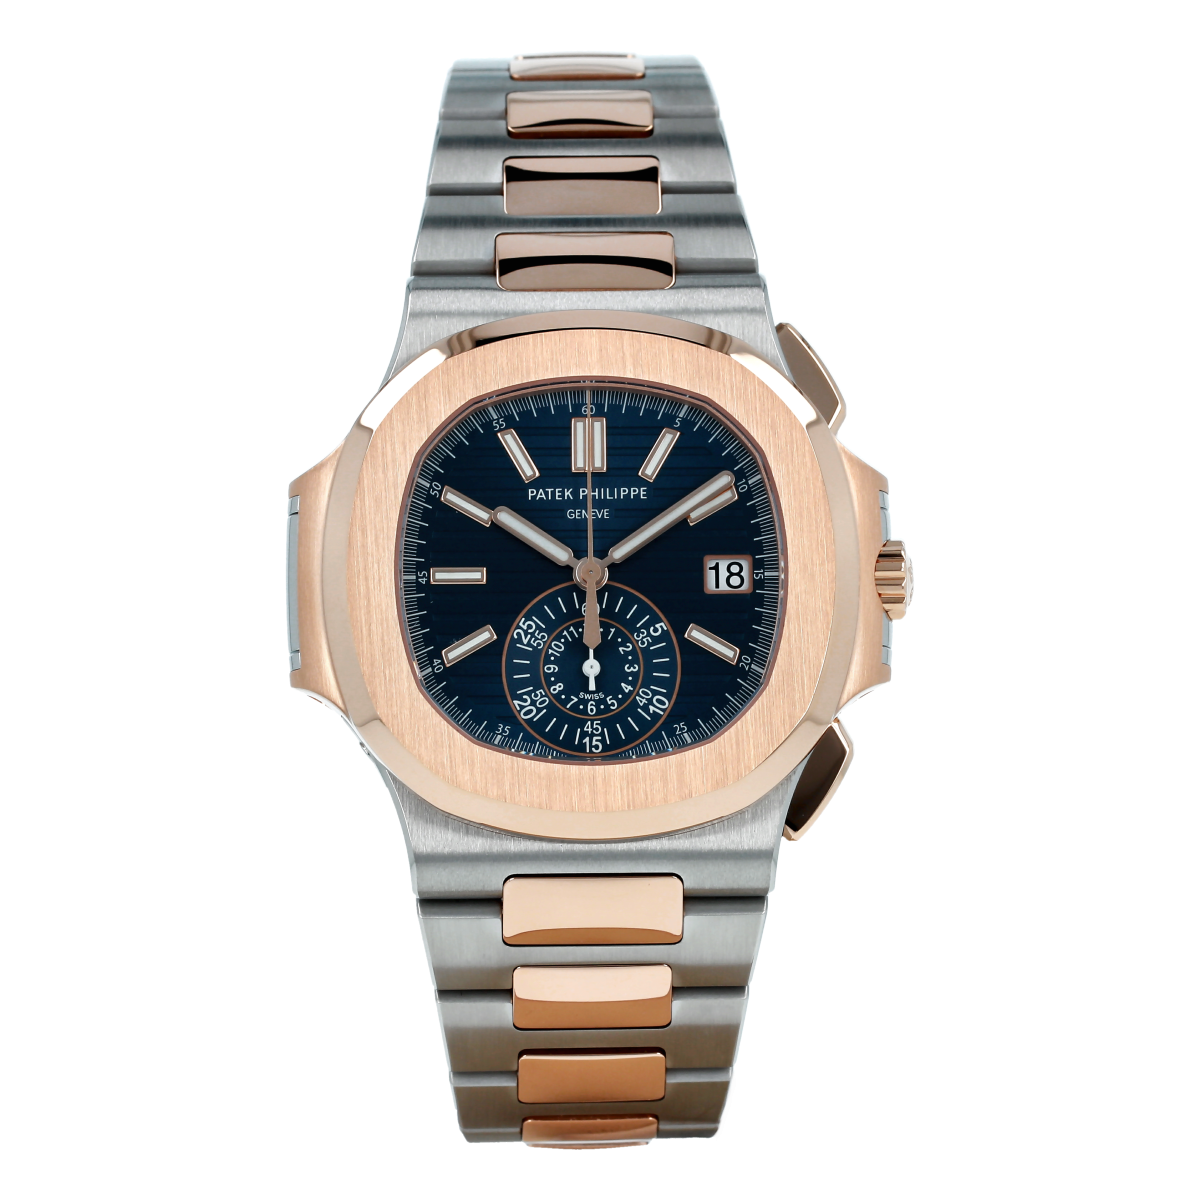 Patek Philippe Nautilus Chronograph 5980/1AR Steel and Rose Gold *Brand-New* | Buy pre-owned Patek Philippe watch